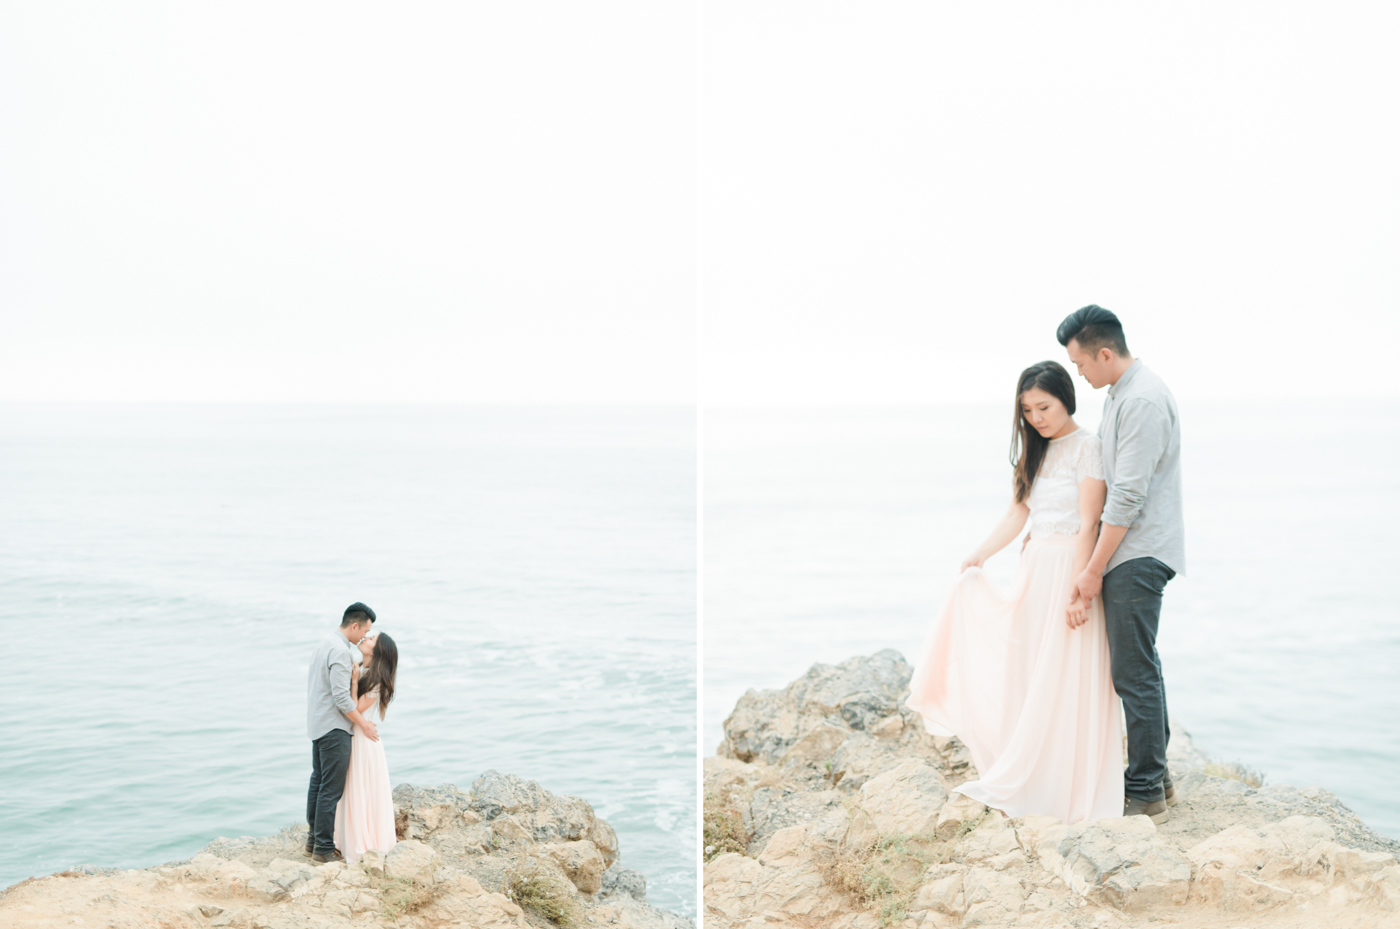 Palos_Verdes_Beach_Engagement_Session_Los_Angles_Fine_Art_Wedding_Photographer-18.jpg